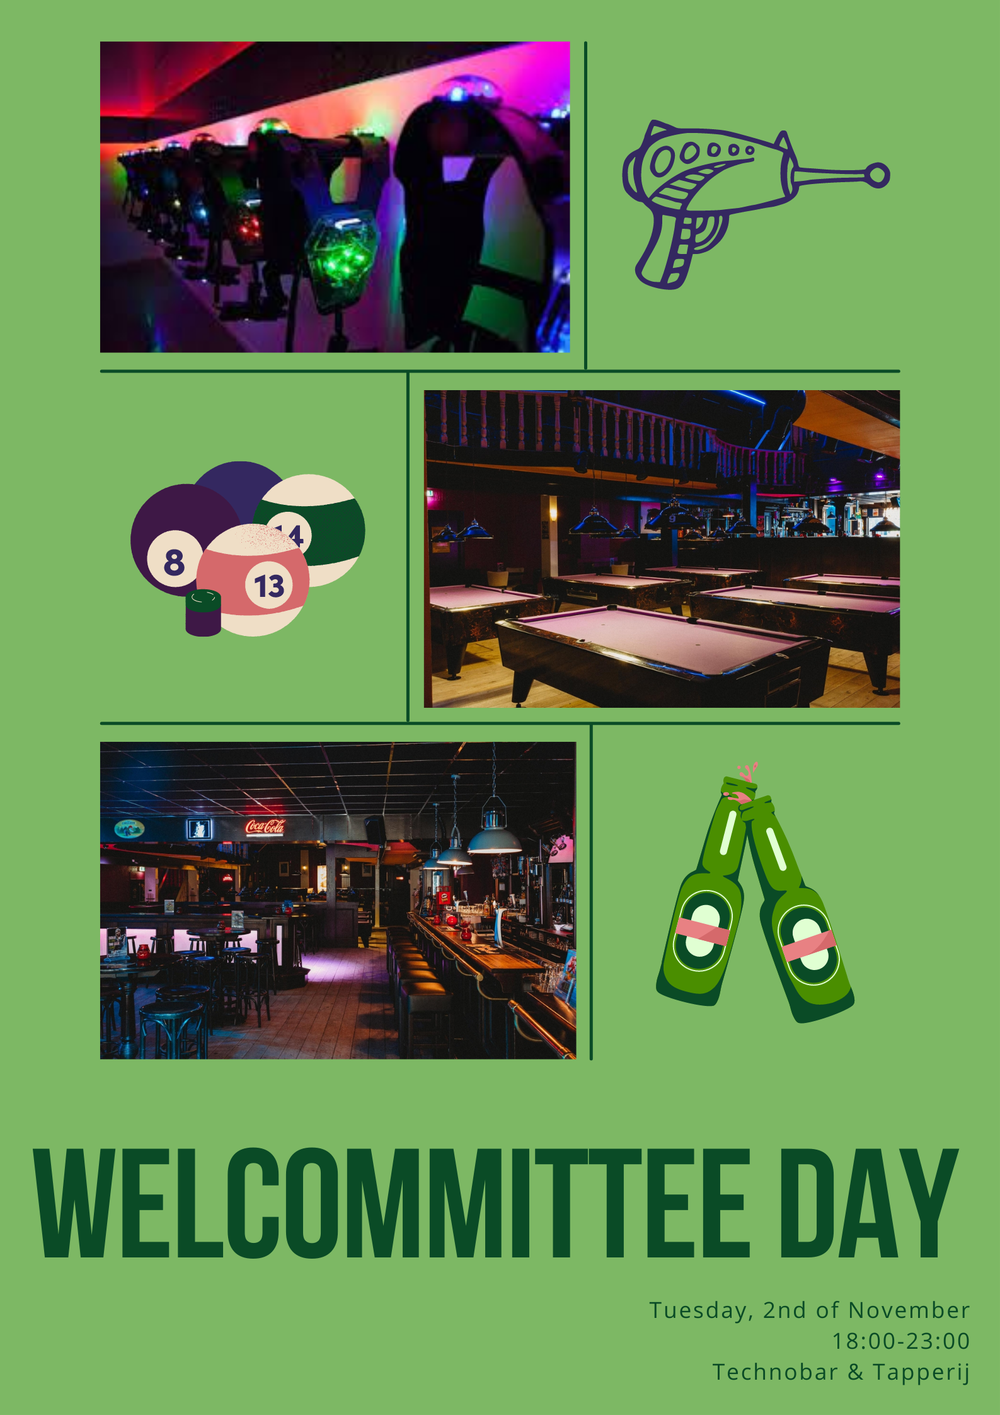 Welcommittee Day